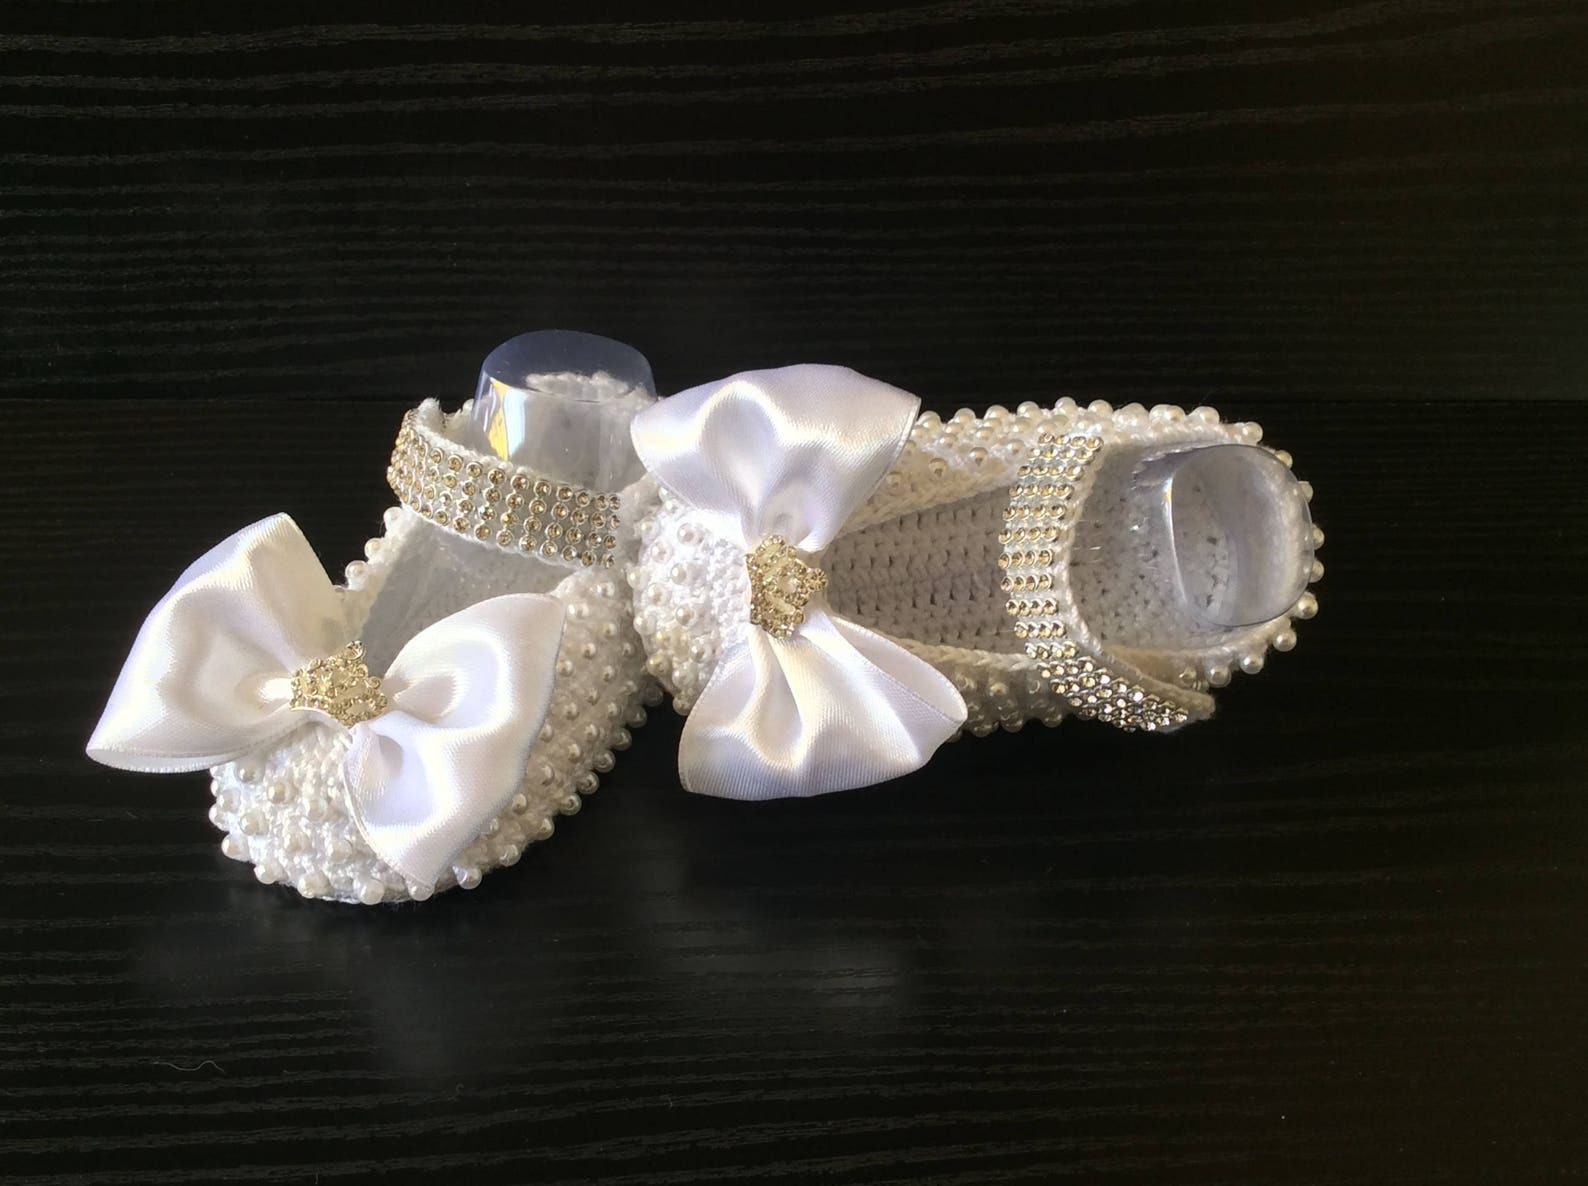 crochet princess shoes with pearls and rhinestones, white handmade mary jane , ballet sleepers with pearls